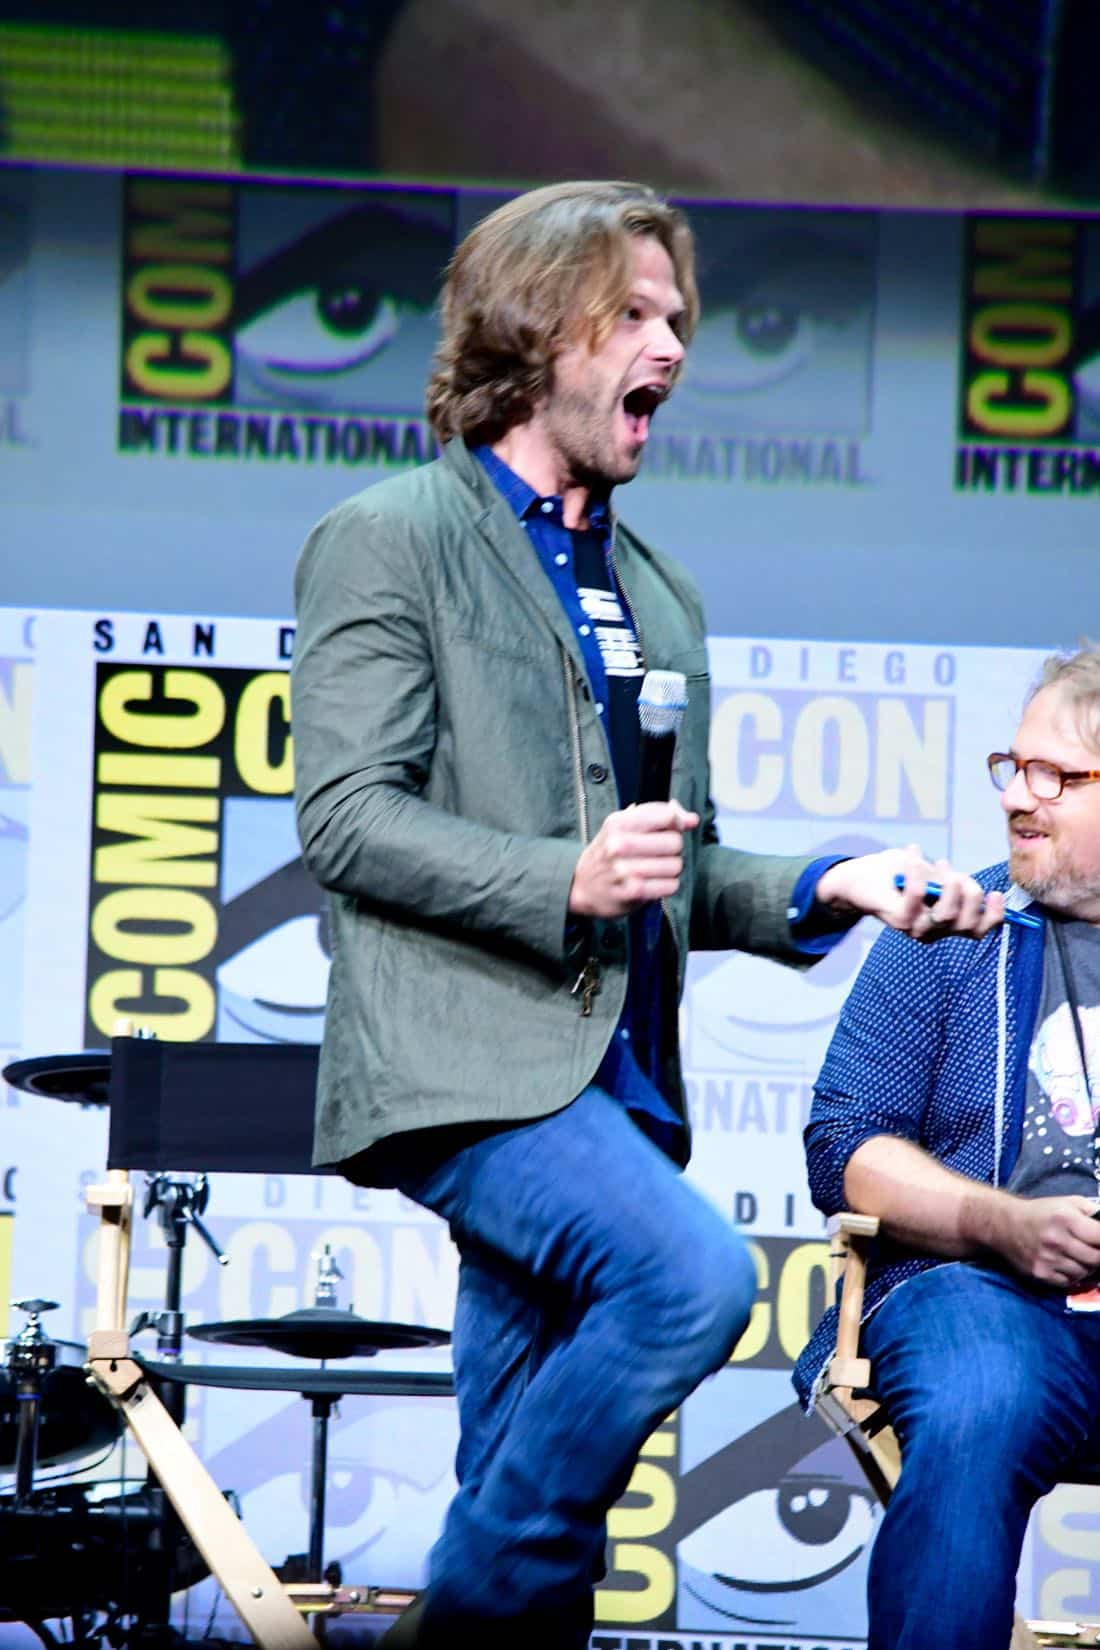 Supernatural Comic Con SDCC 2017 19